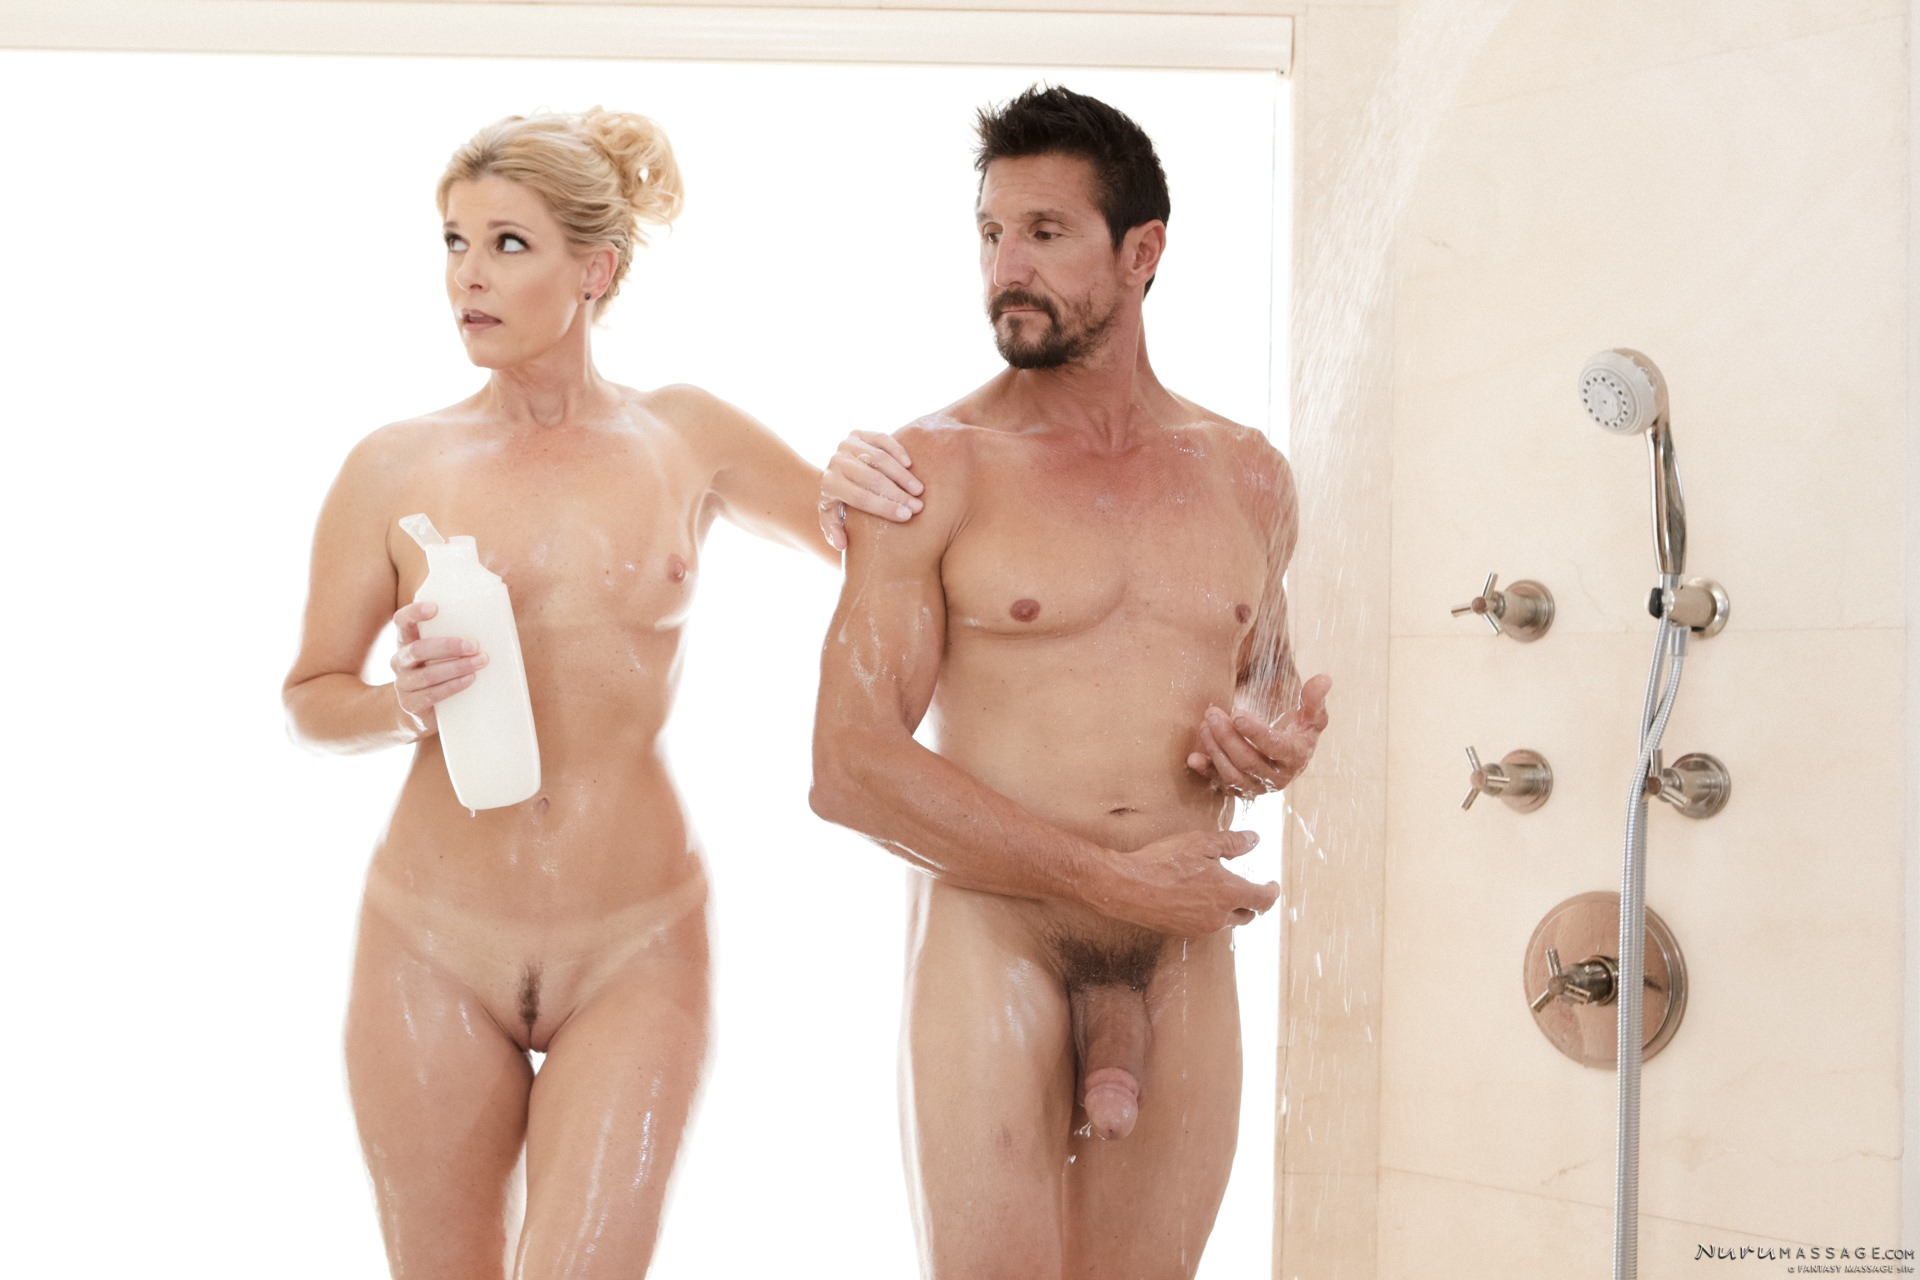 India Summer: The Boss And The Client - 2